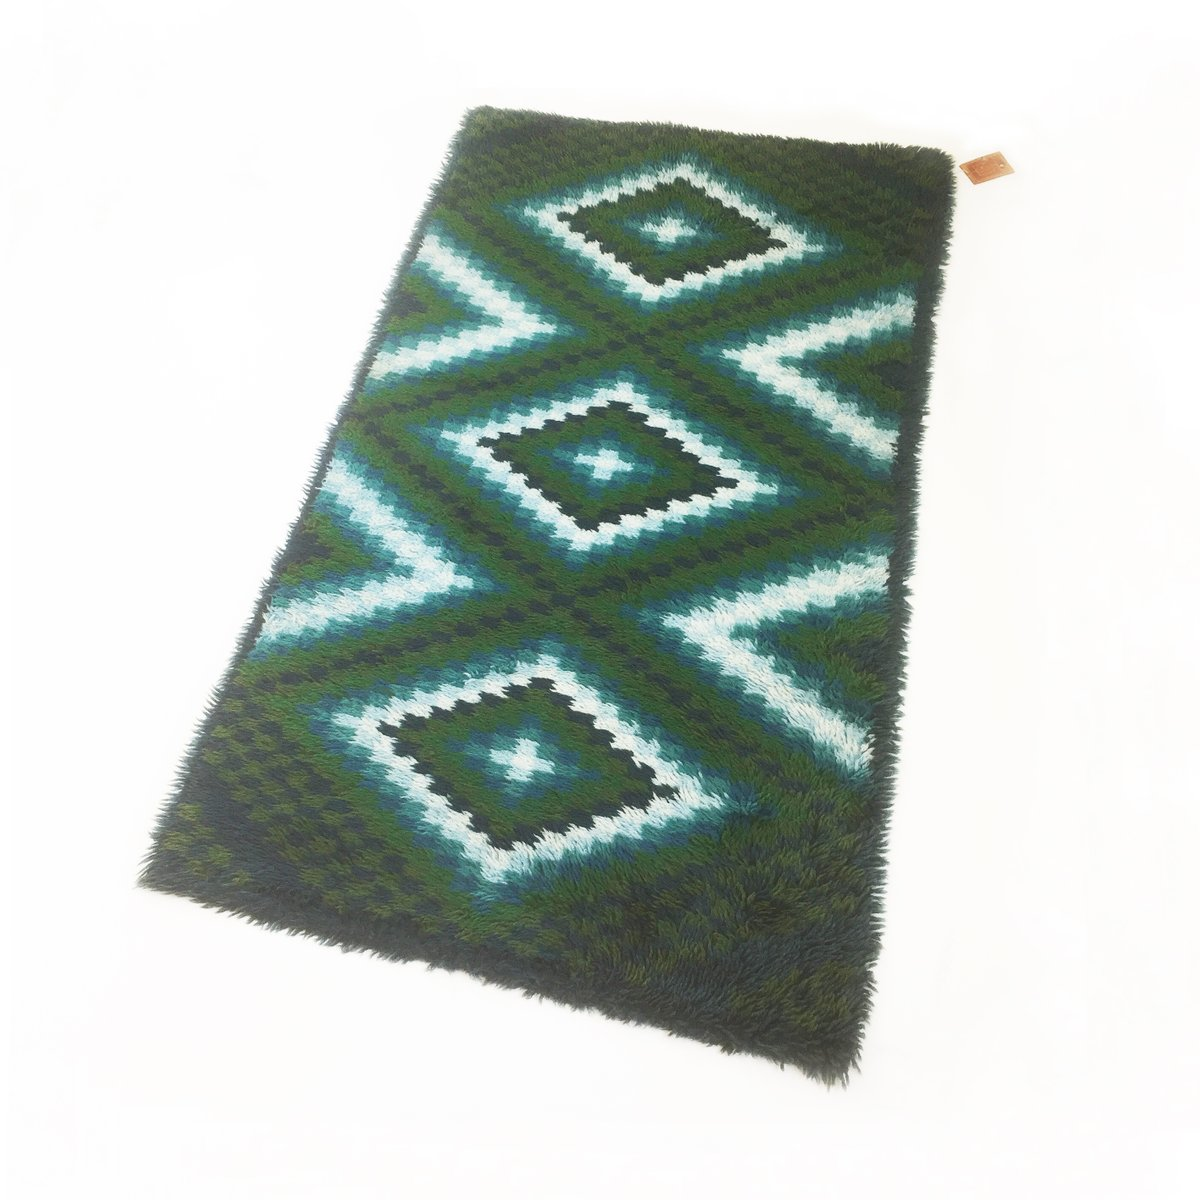 Scandinavian Square Pattern Rya Rug By Ege Taepper 1960s